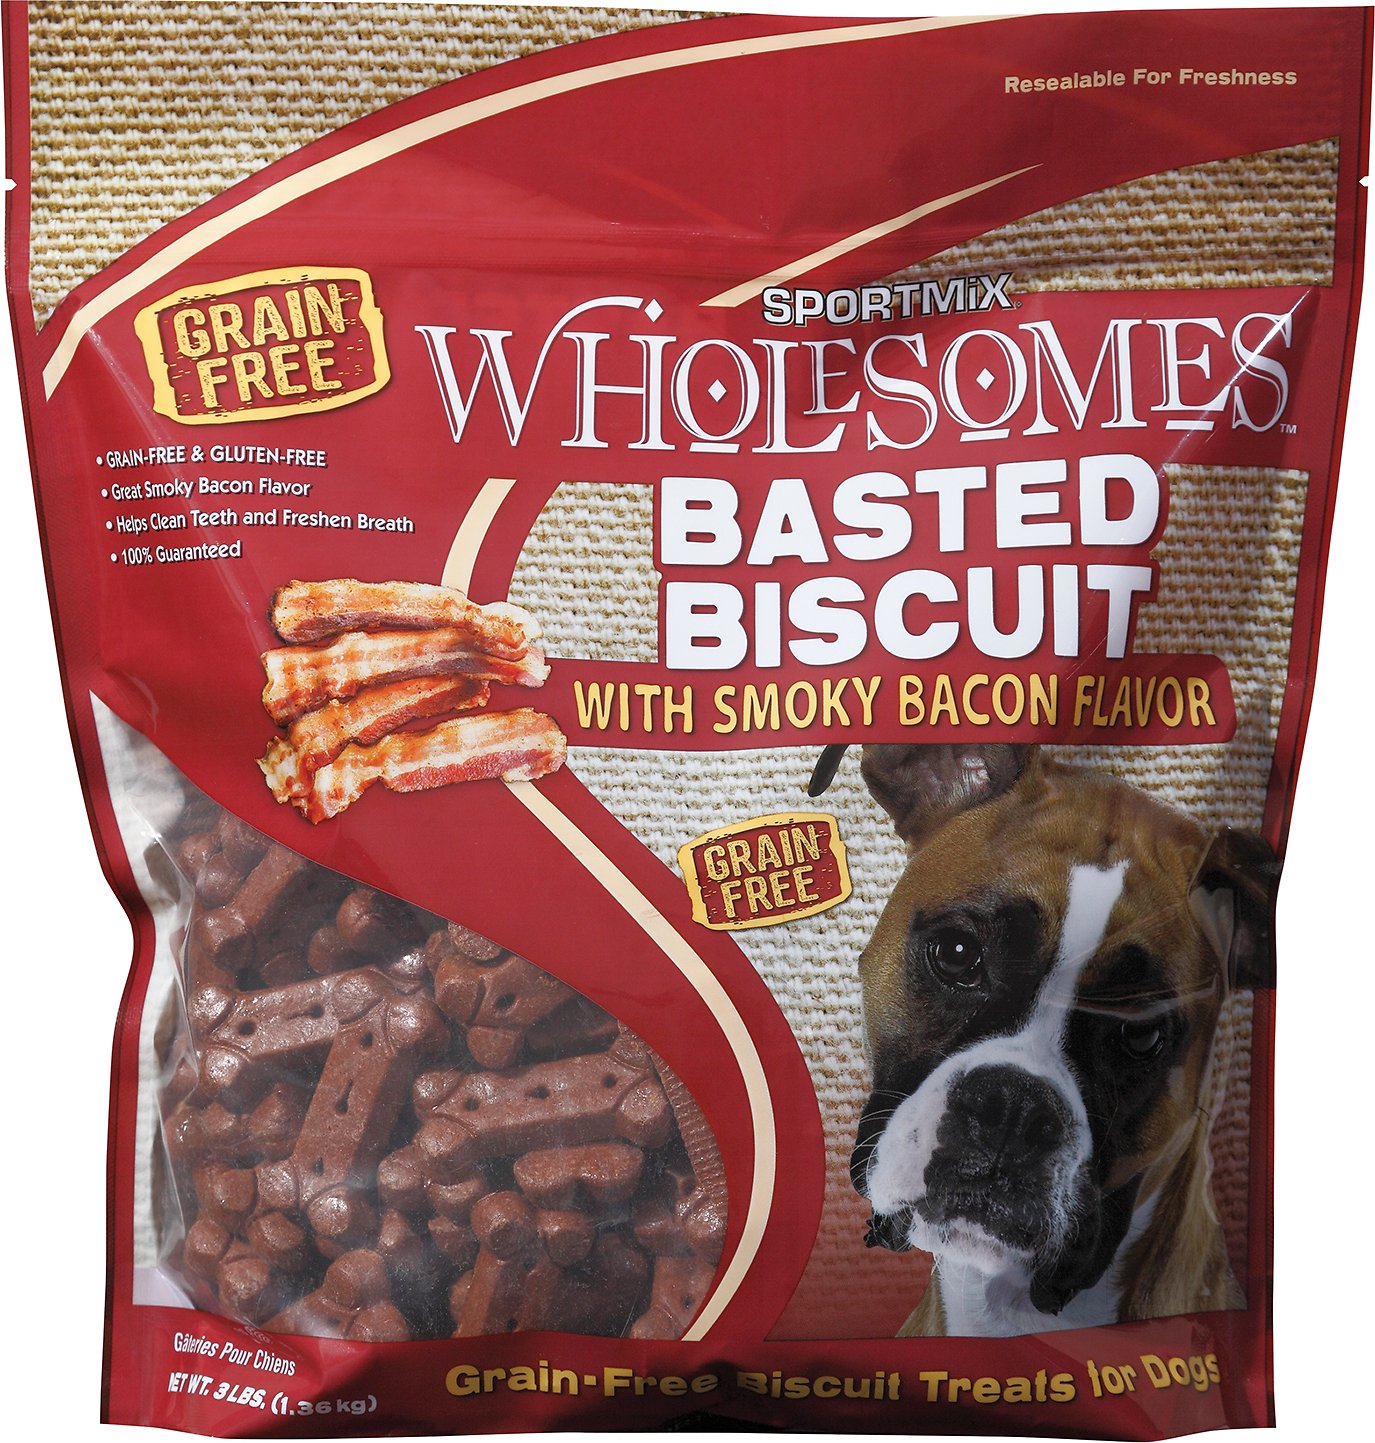 SPORTMiX Wholesomes Grain-Free Premium Basted Biscuit with Hickory Smoked Flavor Dog Treats